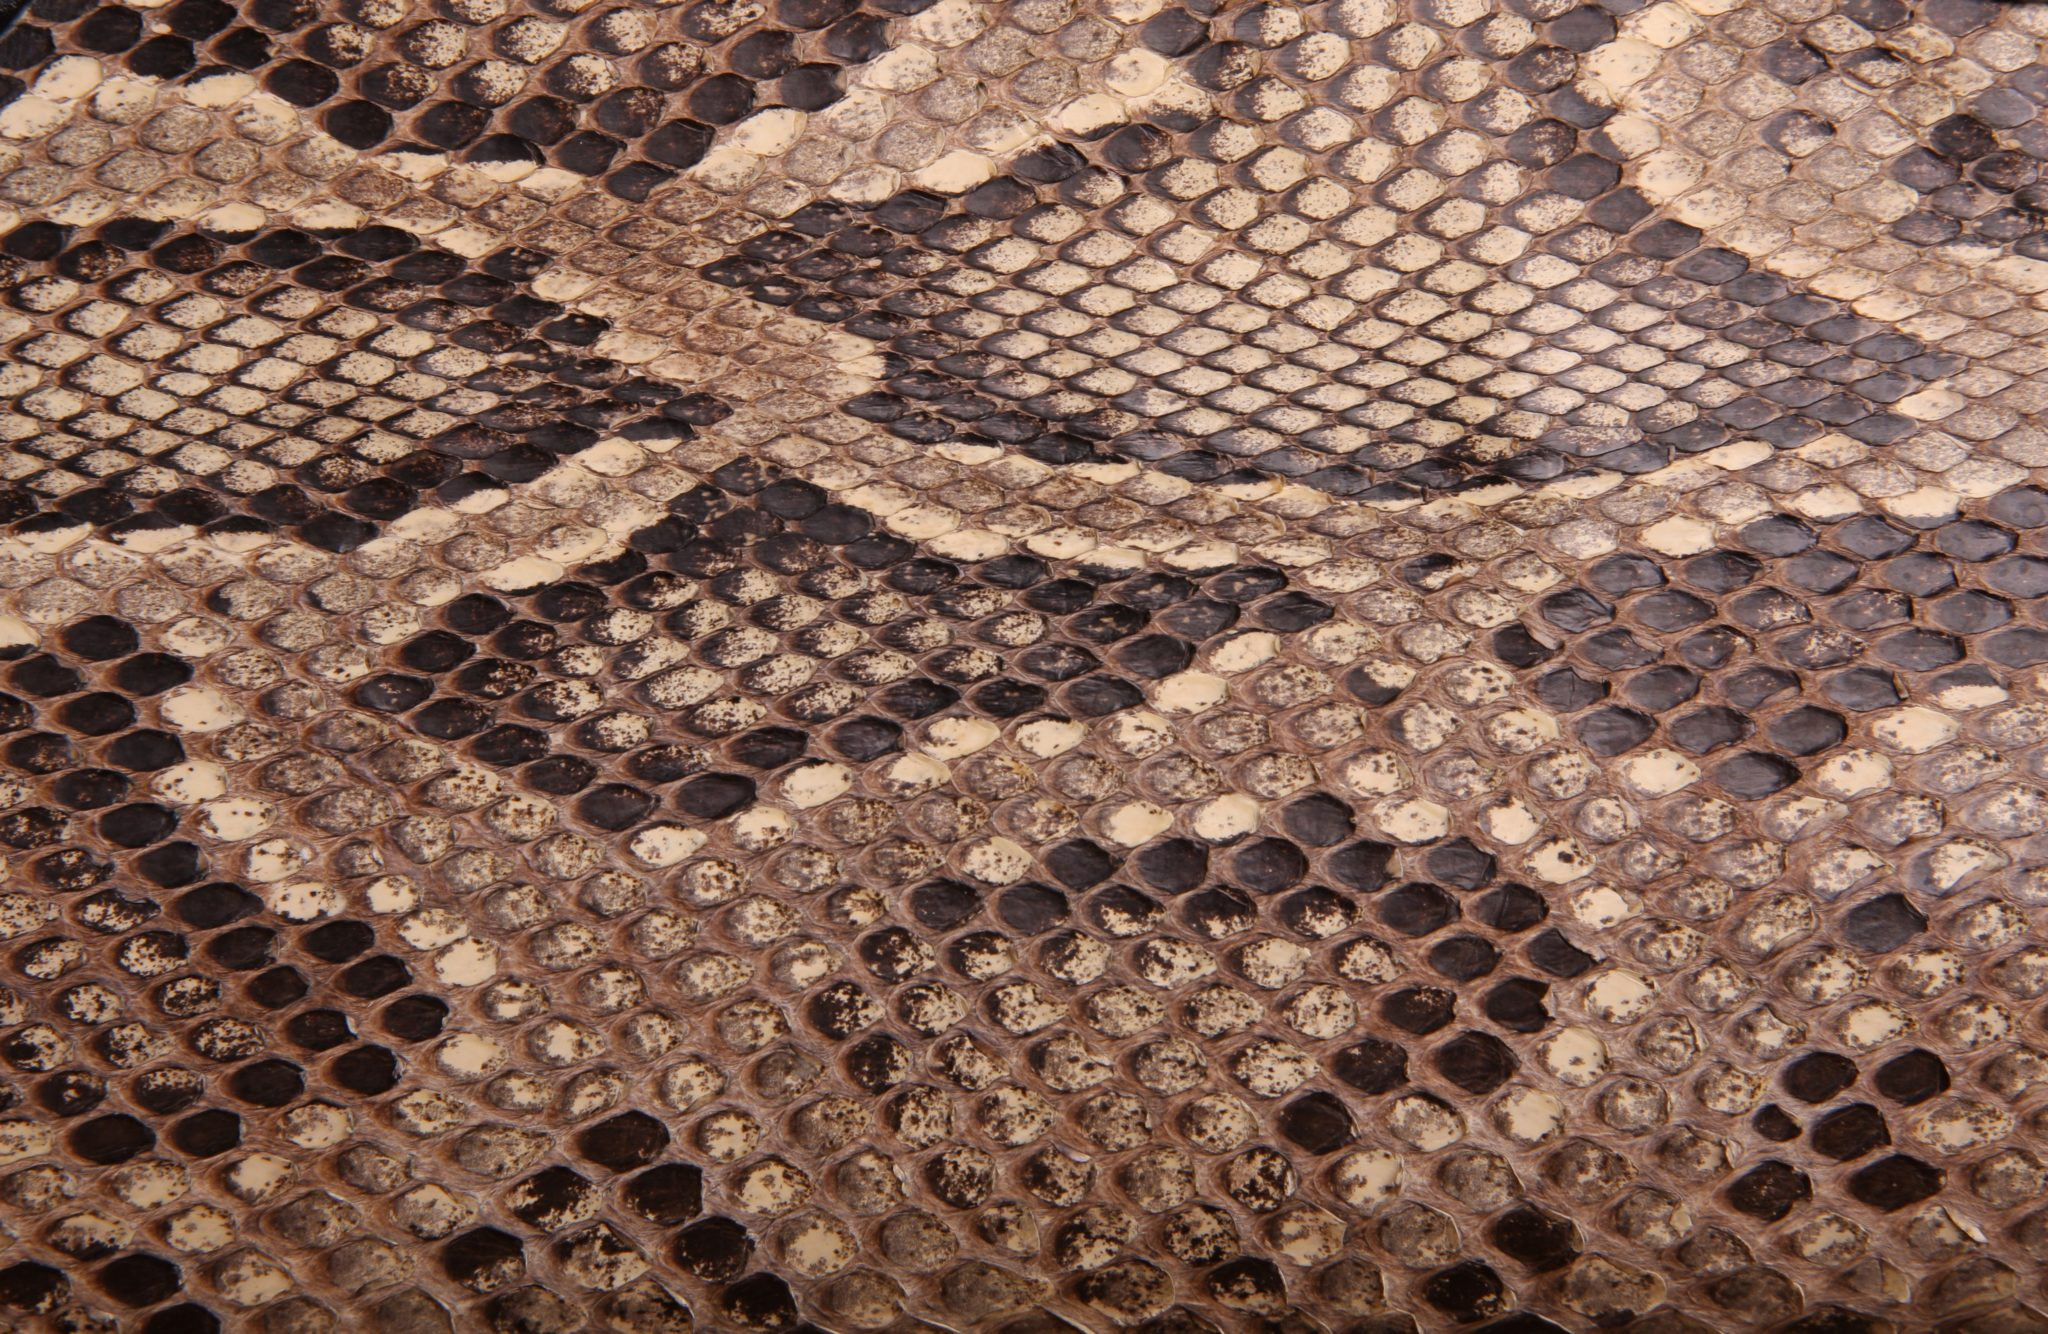 3 Types Of Snakes You Can Have As Pets For Beginner Owners